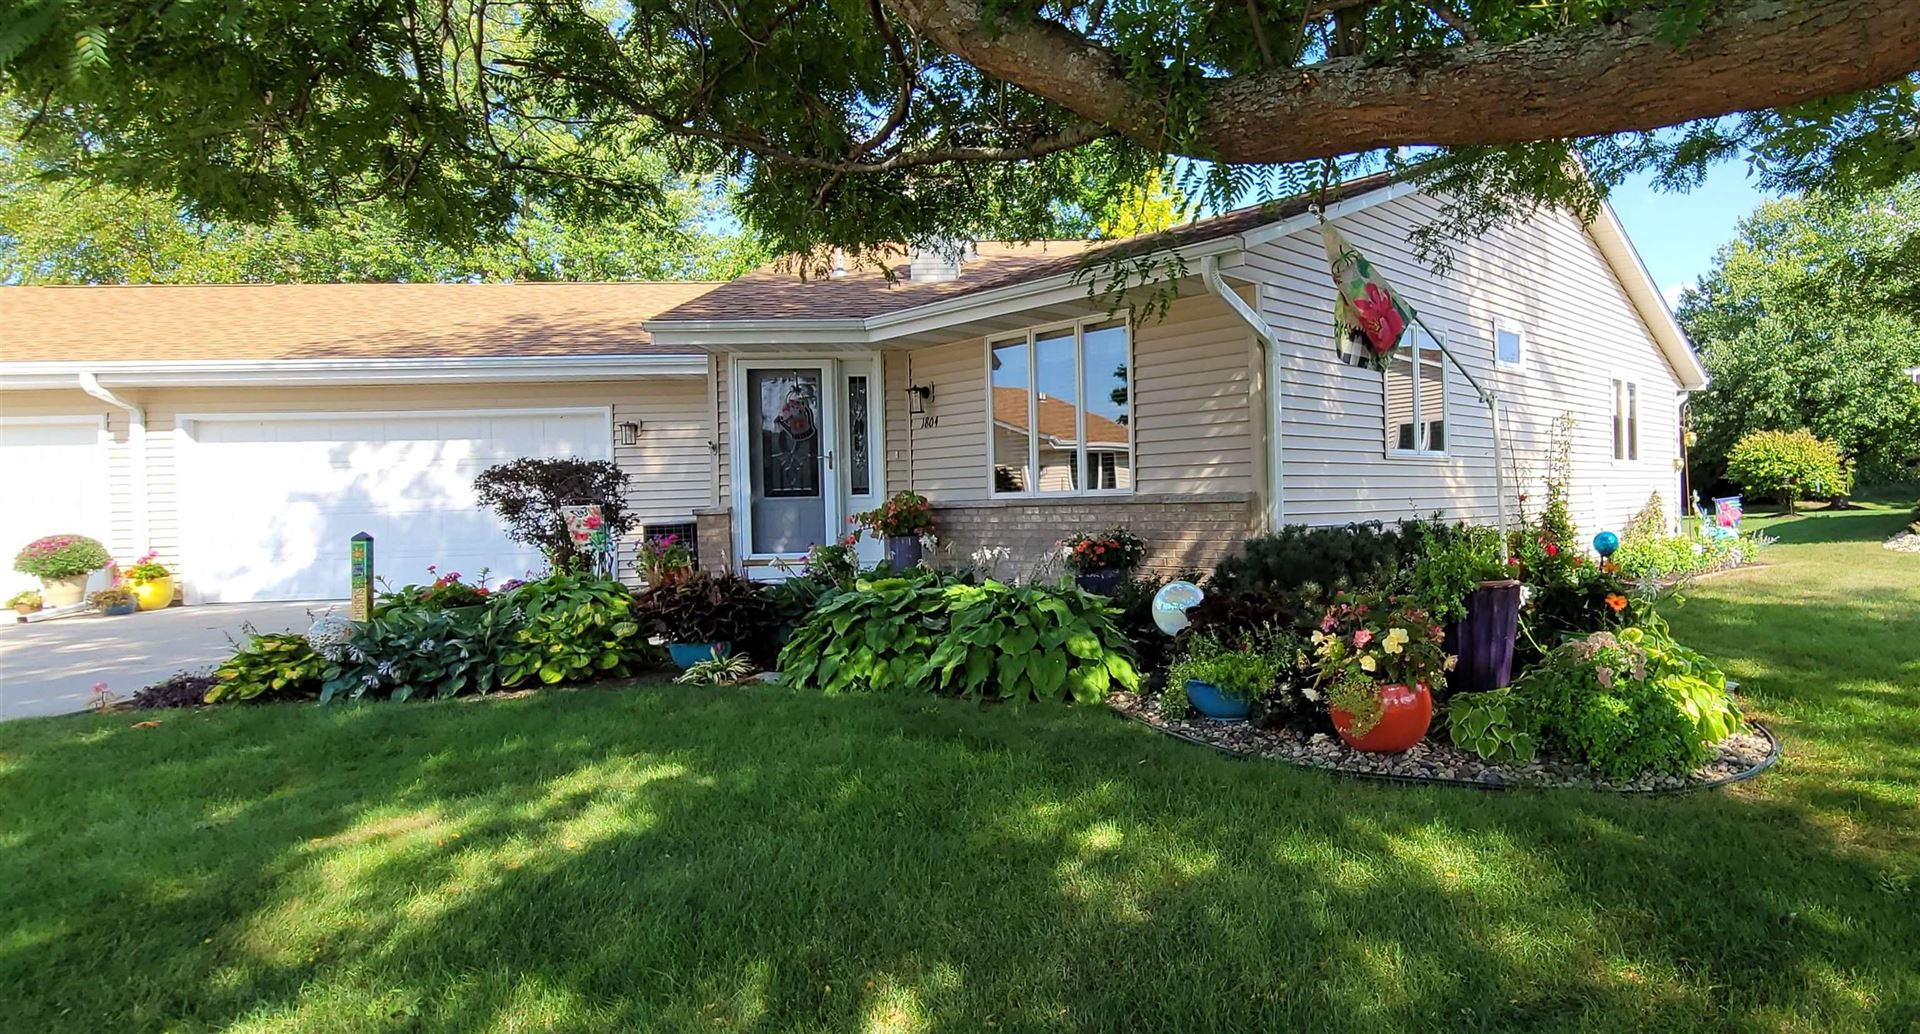 1804 Holly Dr, Janesville, WI 53546 - #: 1918136